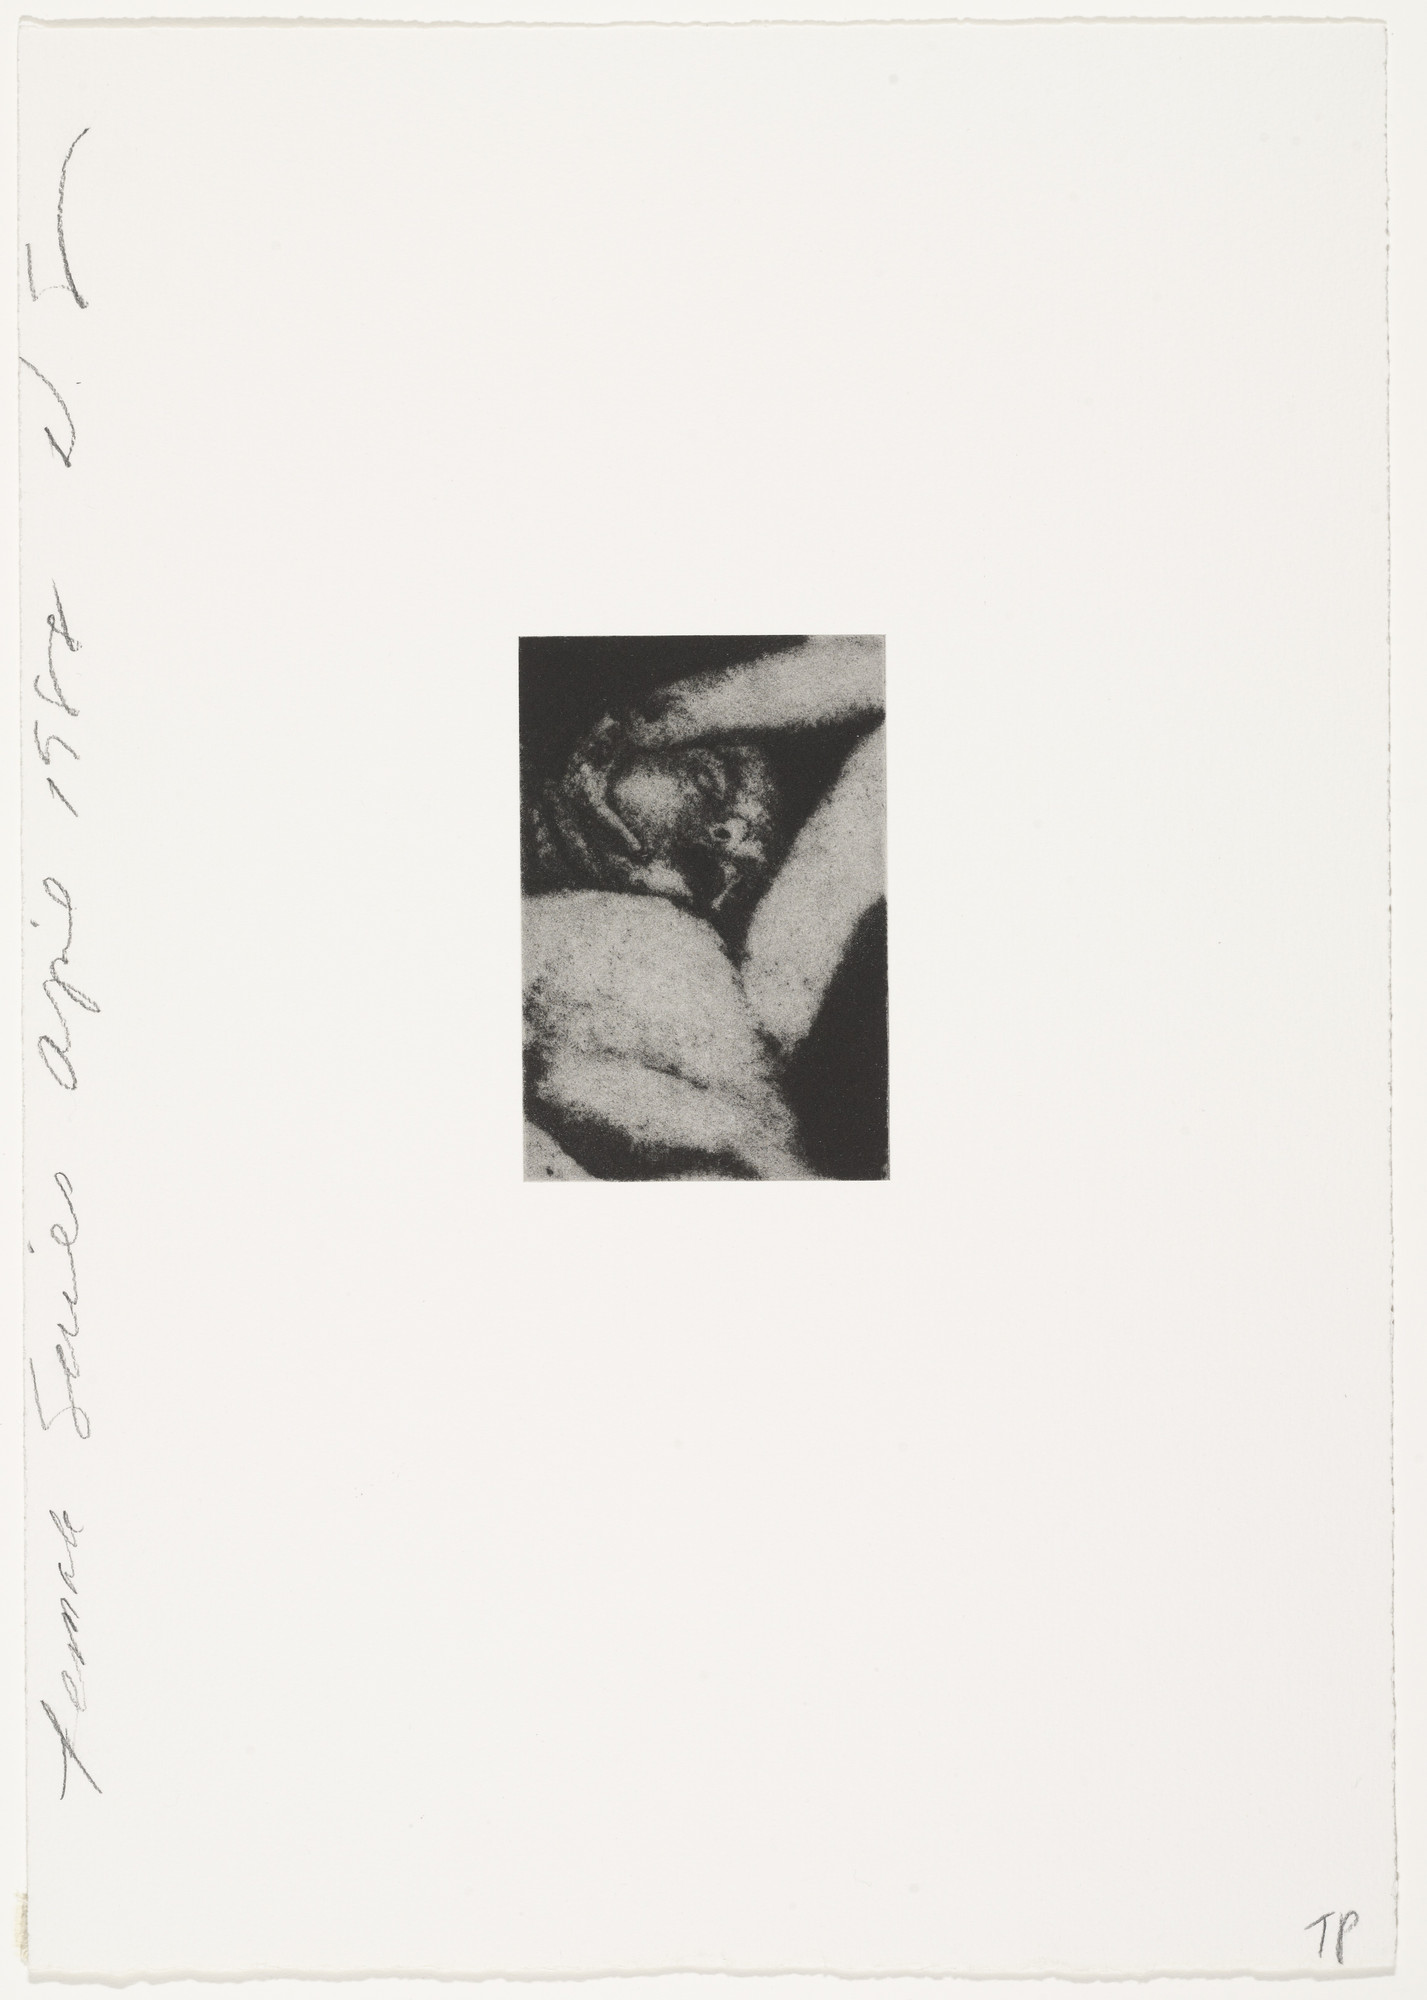 Donald Sultan. Untitled from the Female Series. April 1988. | MoMA